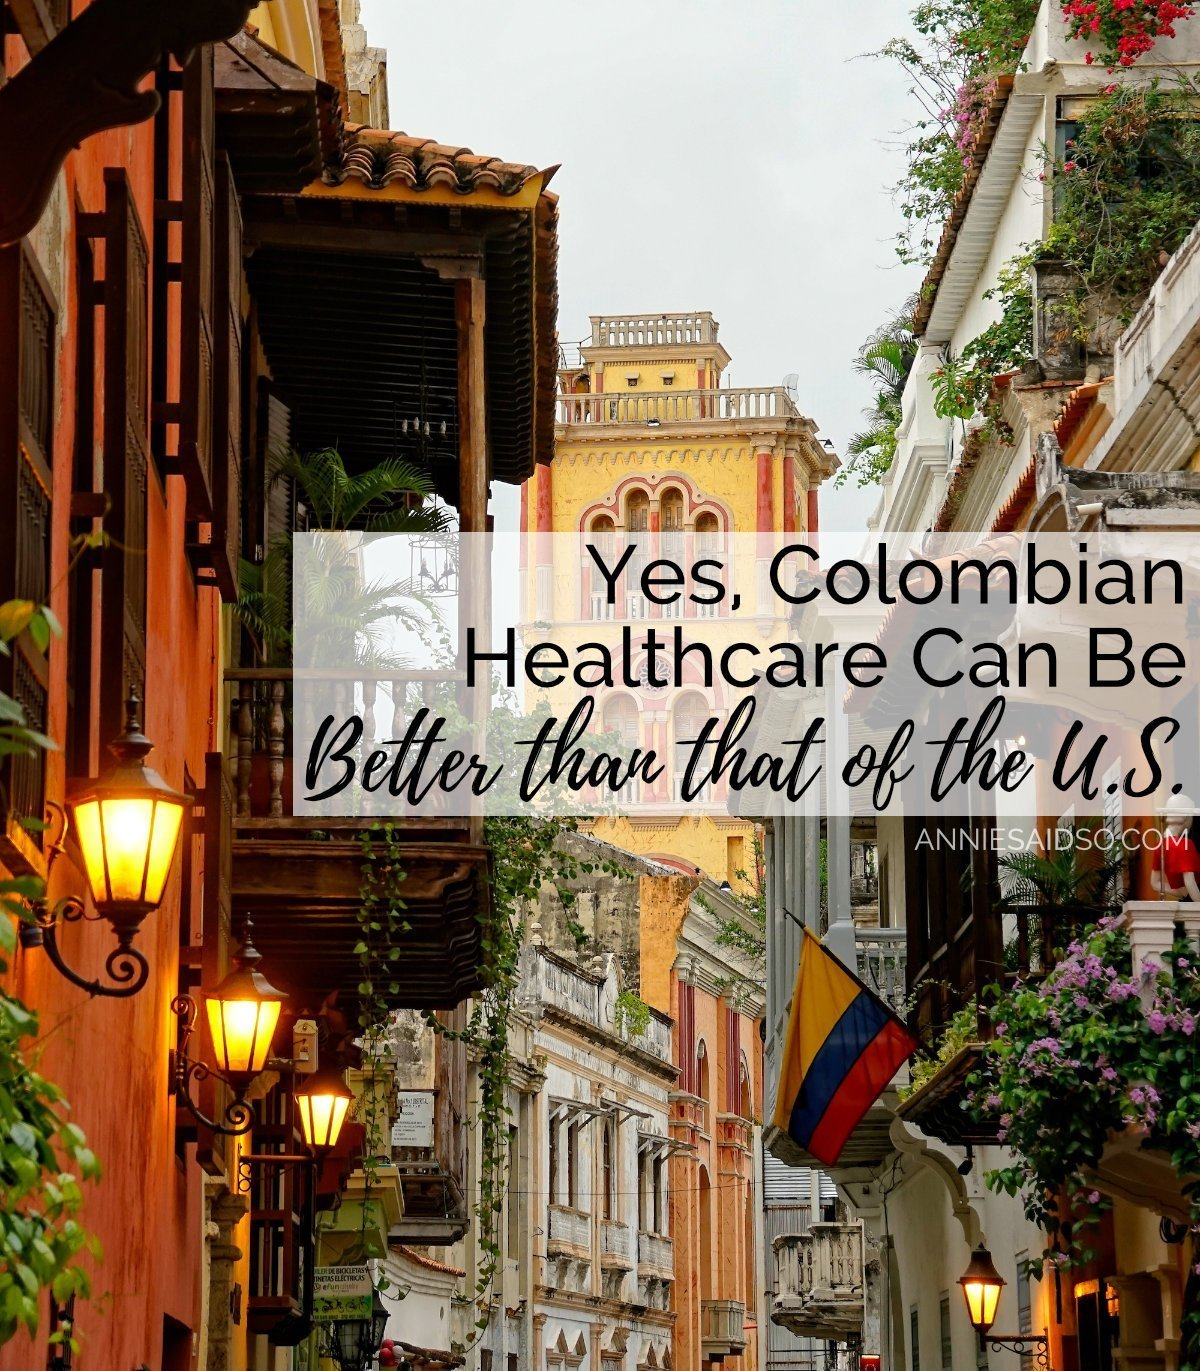 Steven Crowder Is Wrong About Colombian Healthcare: Yes, It Can Be Better than America's